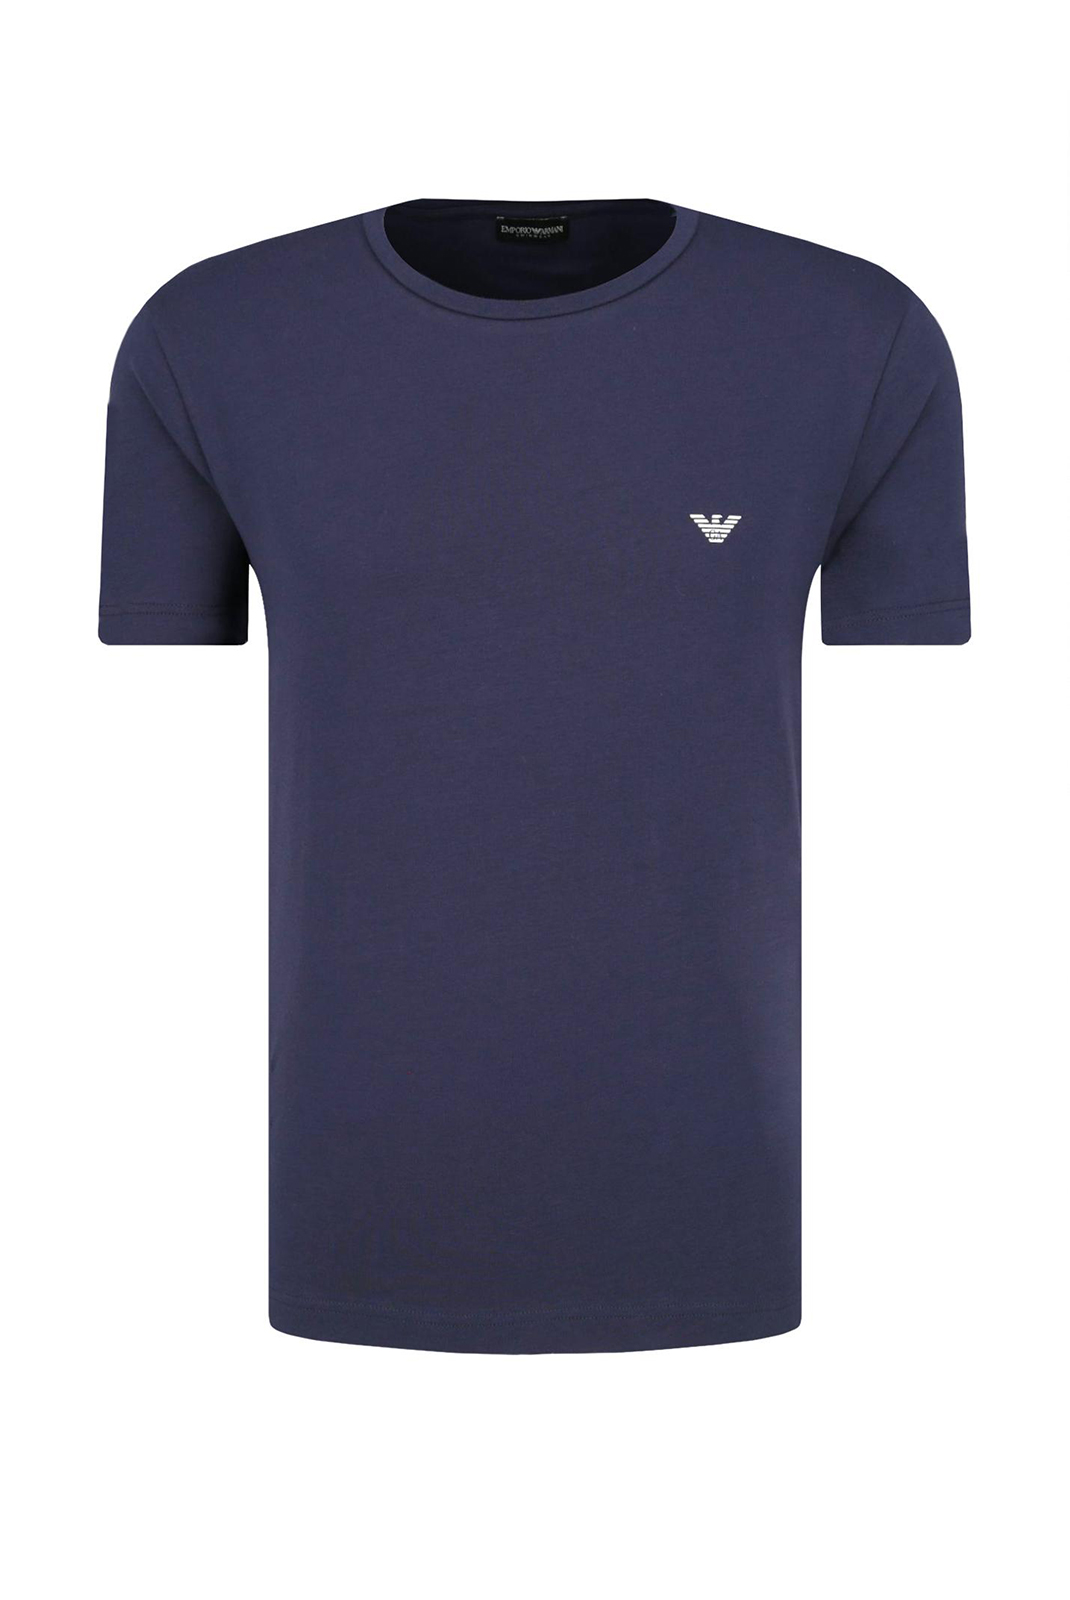 T-S manches courtes  Emporio armani 211813 9P462 6935 NAVY BLUE